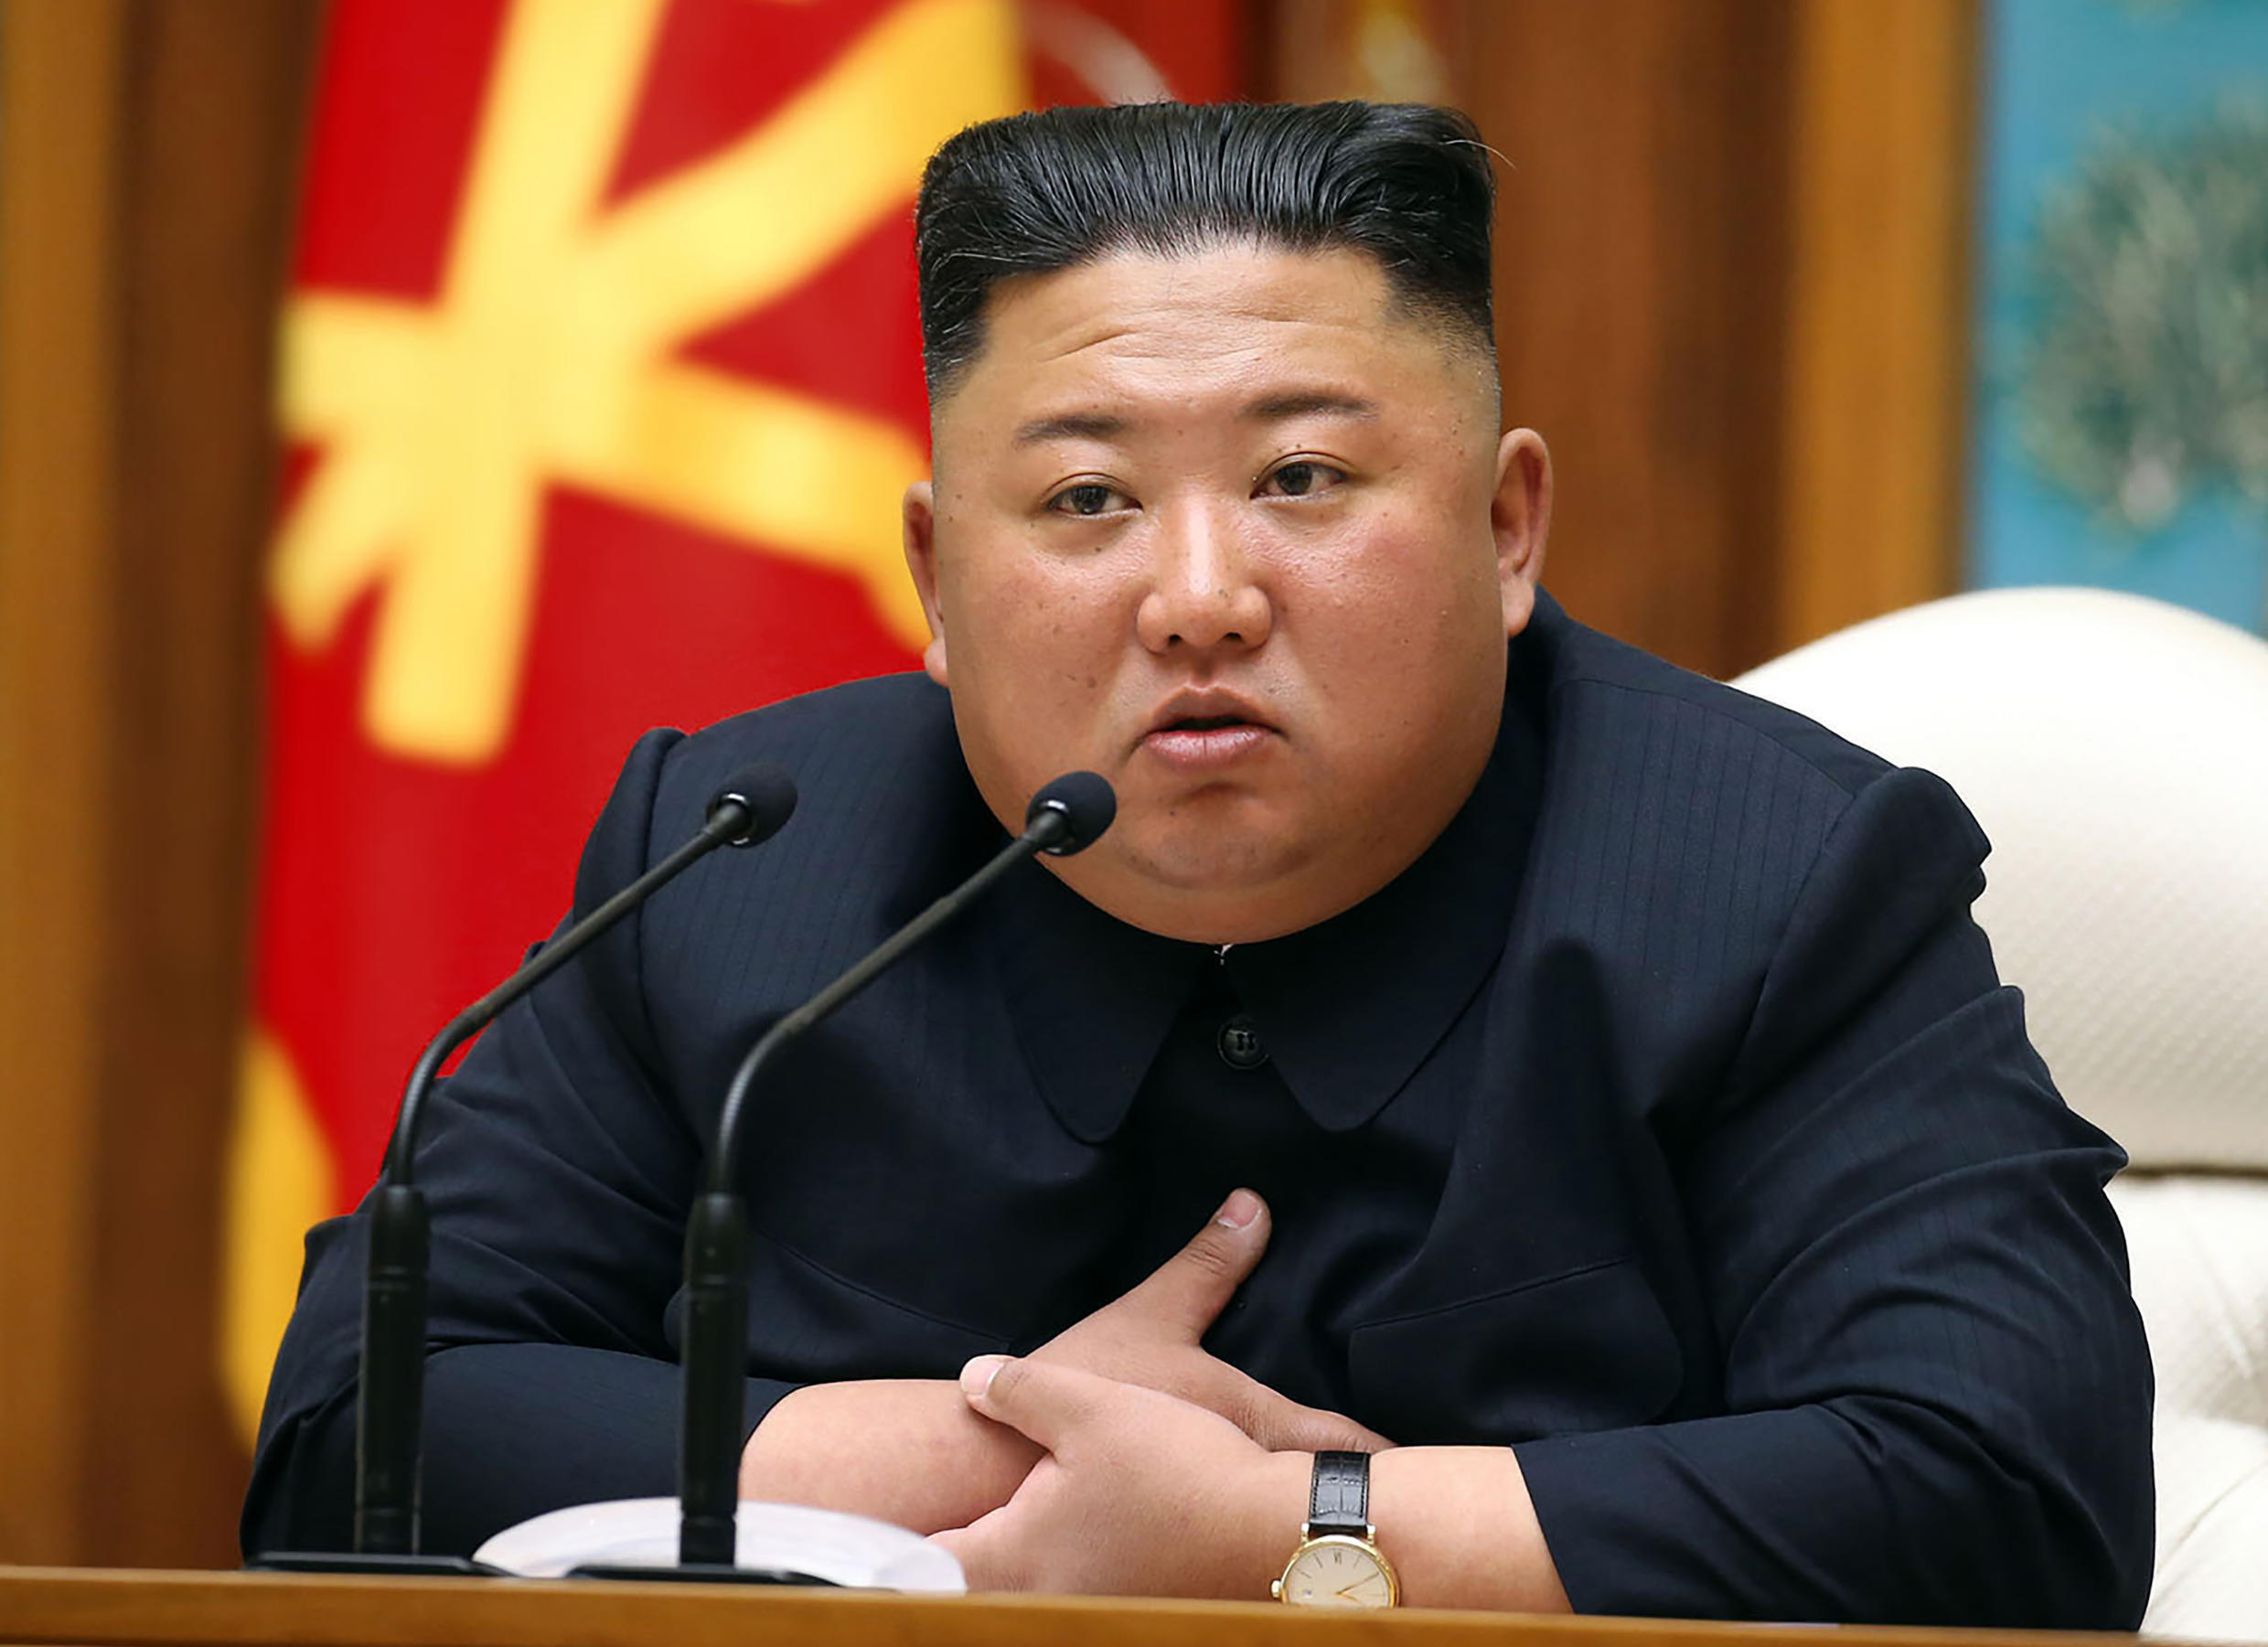 Kim has established an iron grip over the levers of authority in his nuclear-armed country since inheriting power in his late 20s in 2011